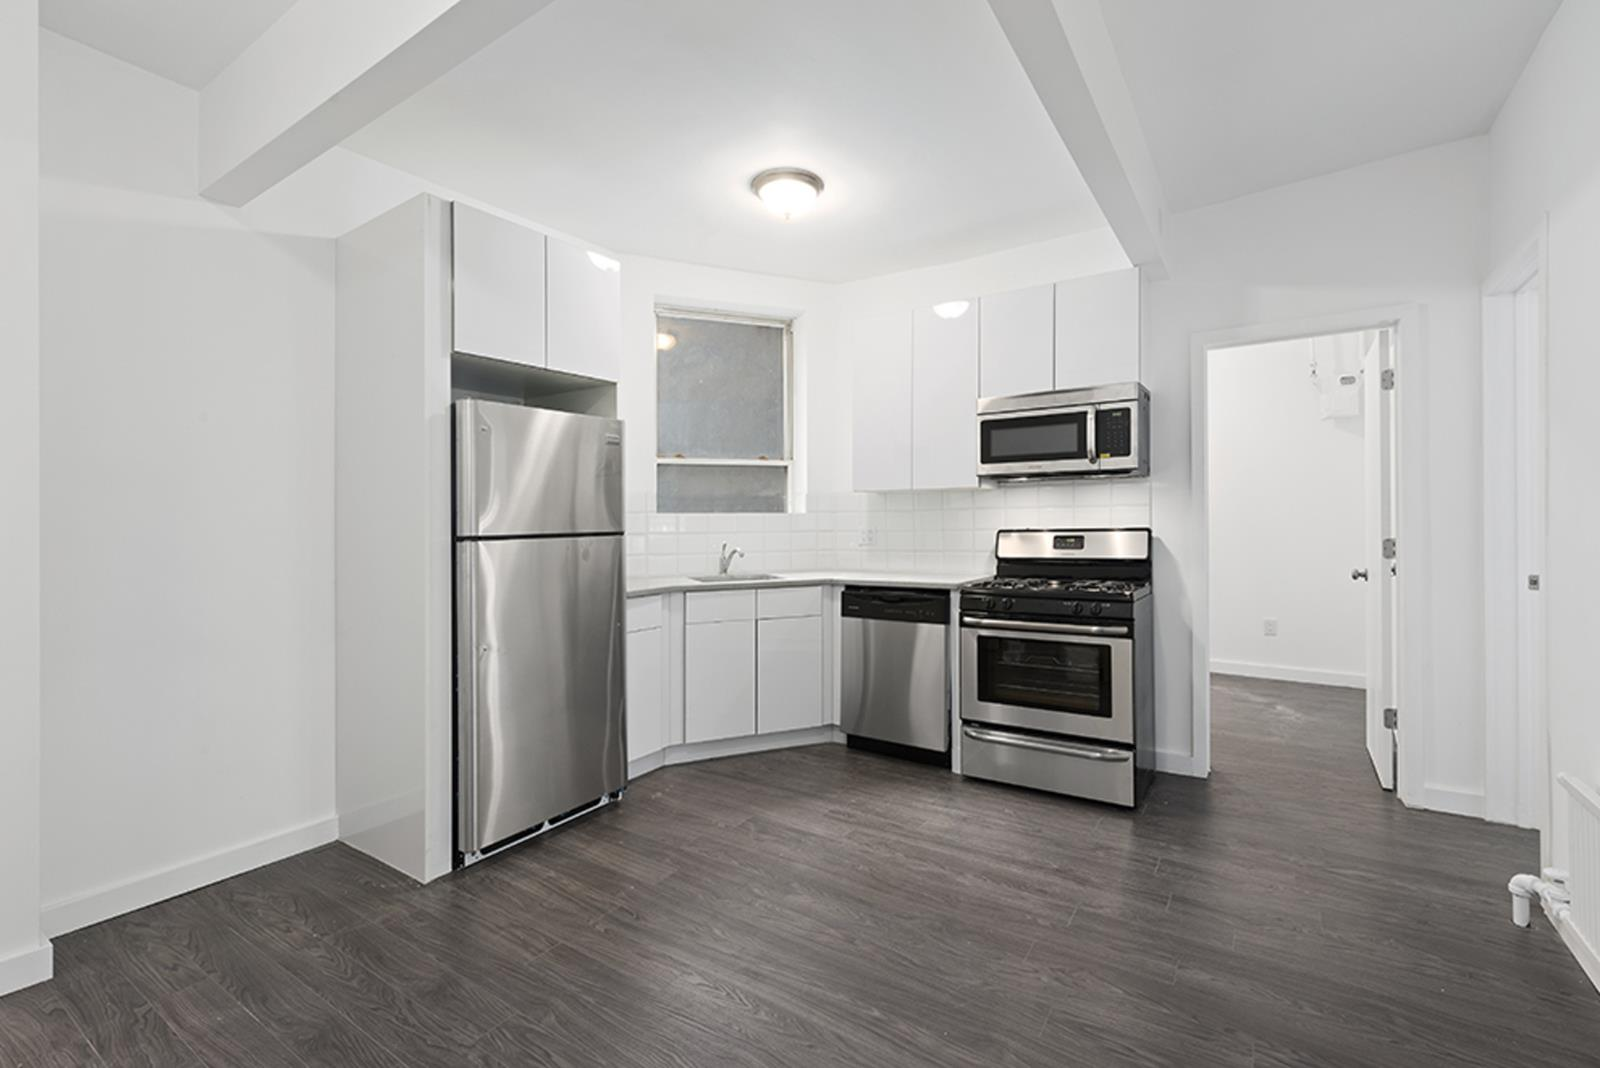 584 West 152nd Street, Apt 1-C, Manhattan, New York 10031